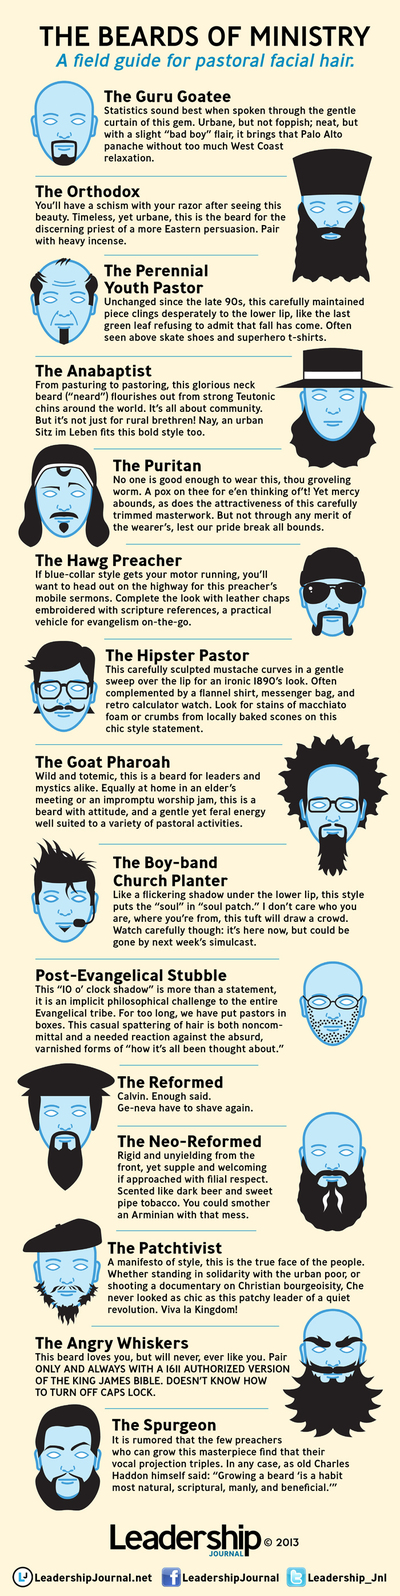 The beards of ministry